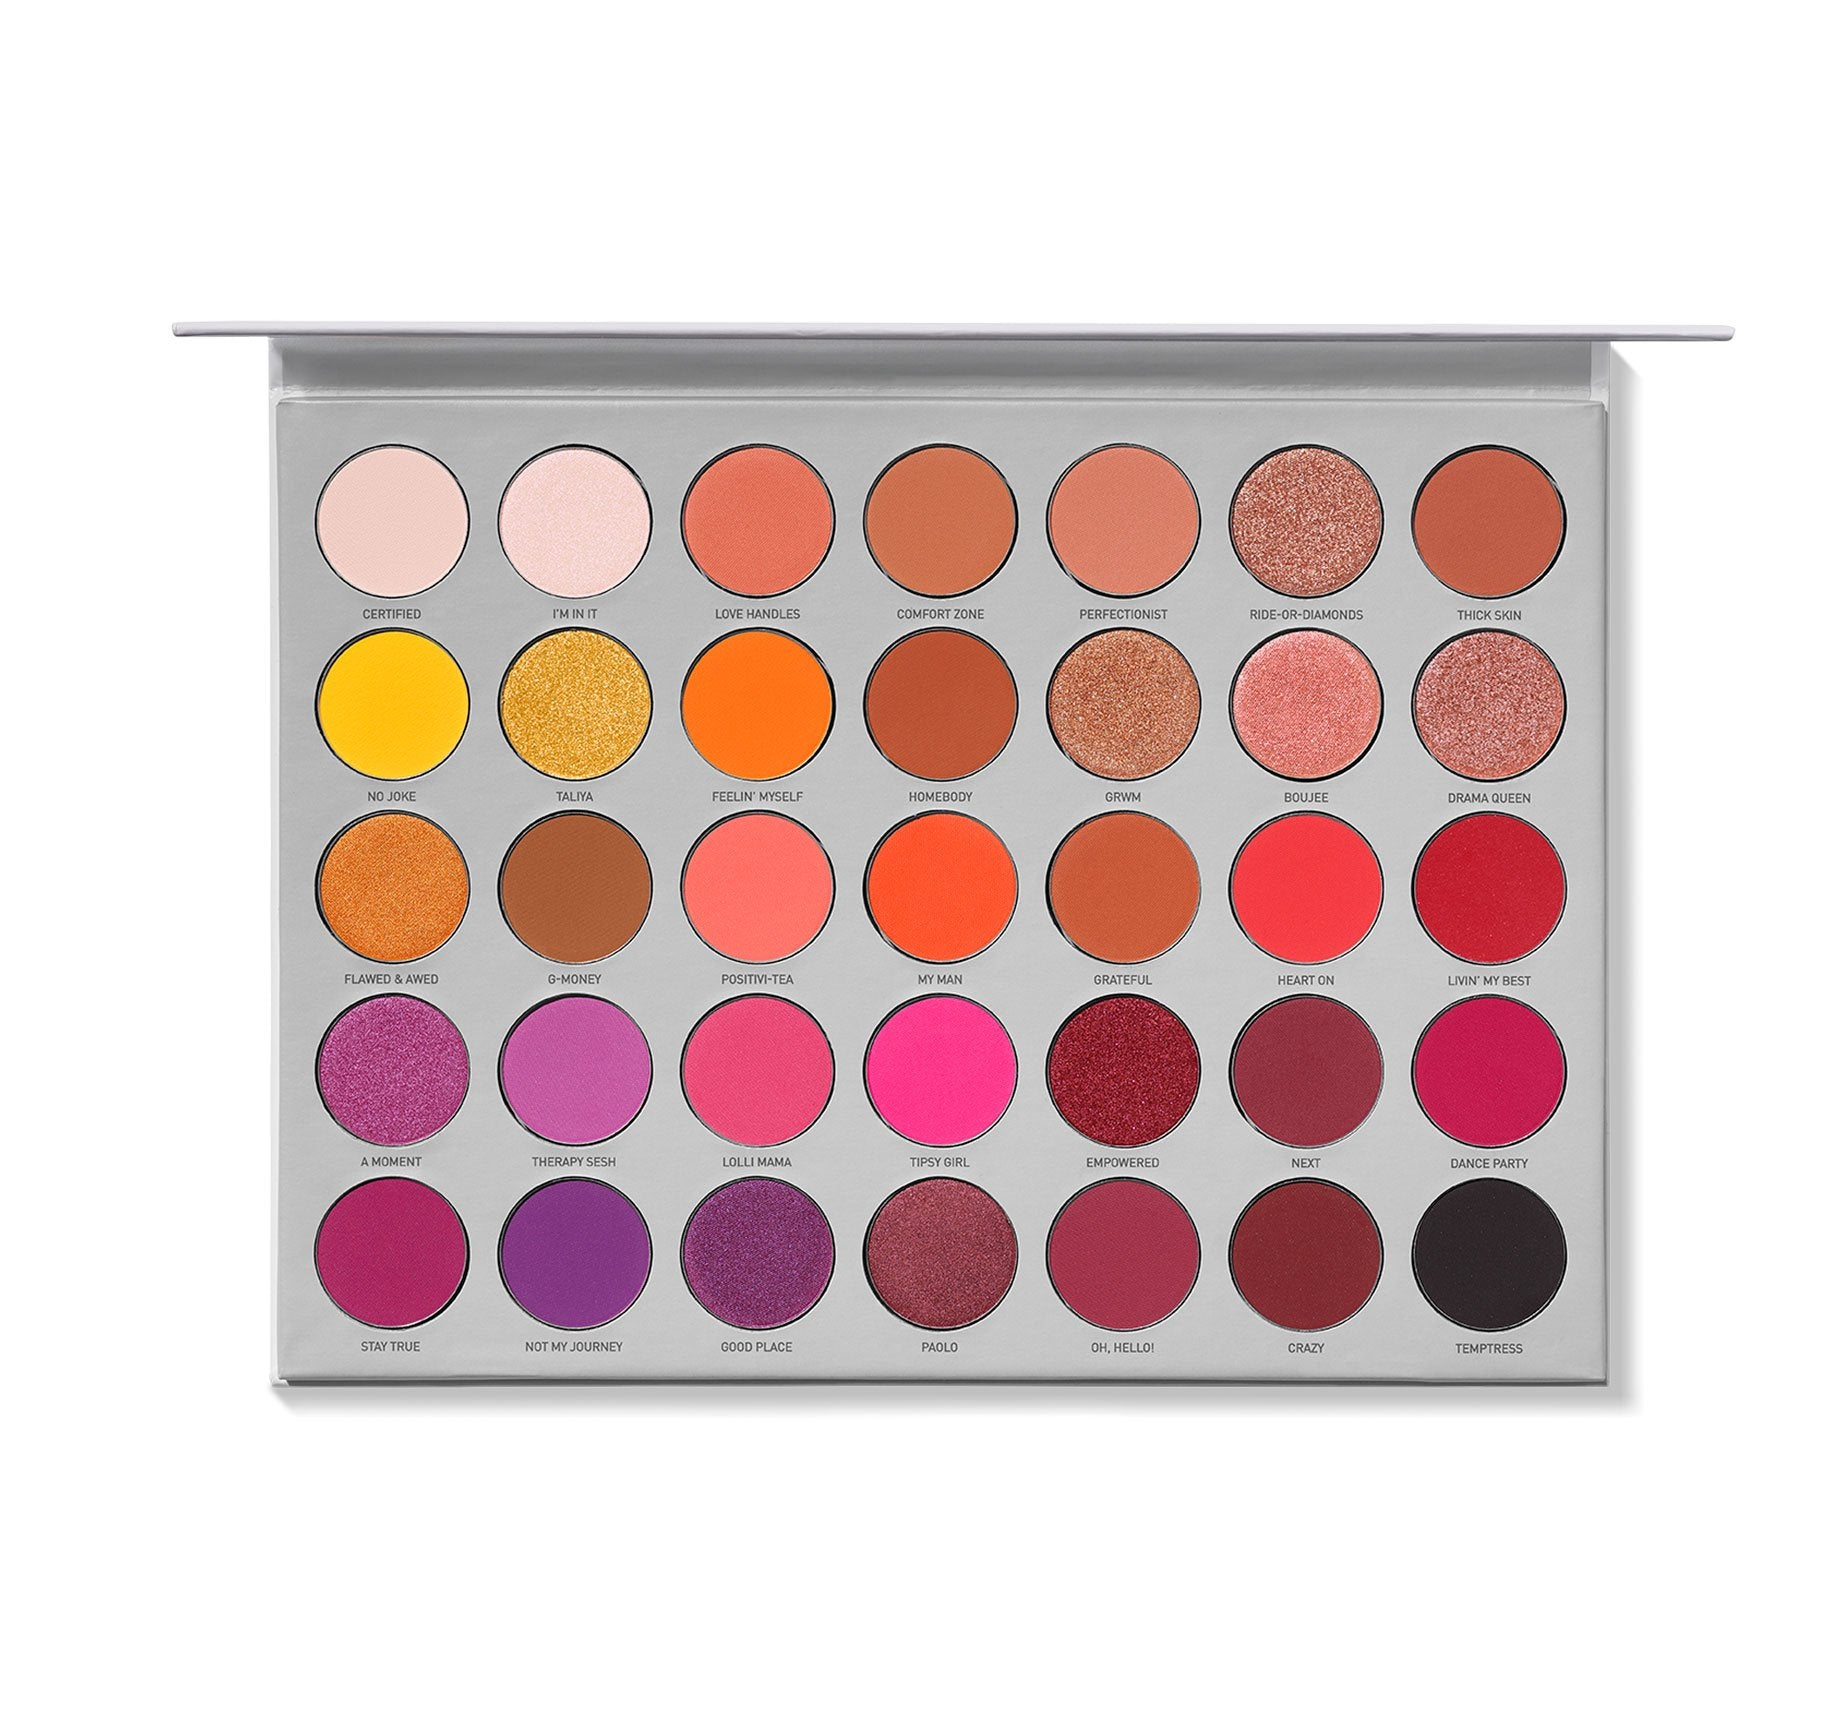 JACLYN HILL PALETTE VOLUME II, view larger image